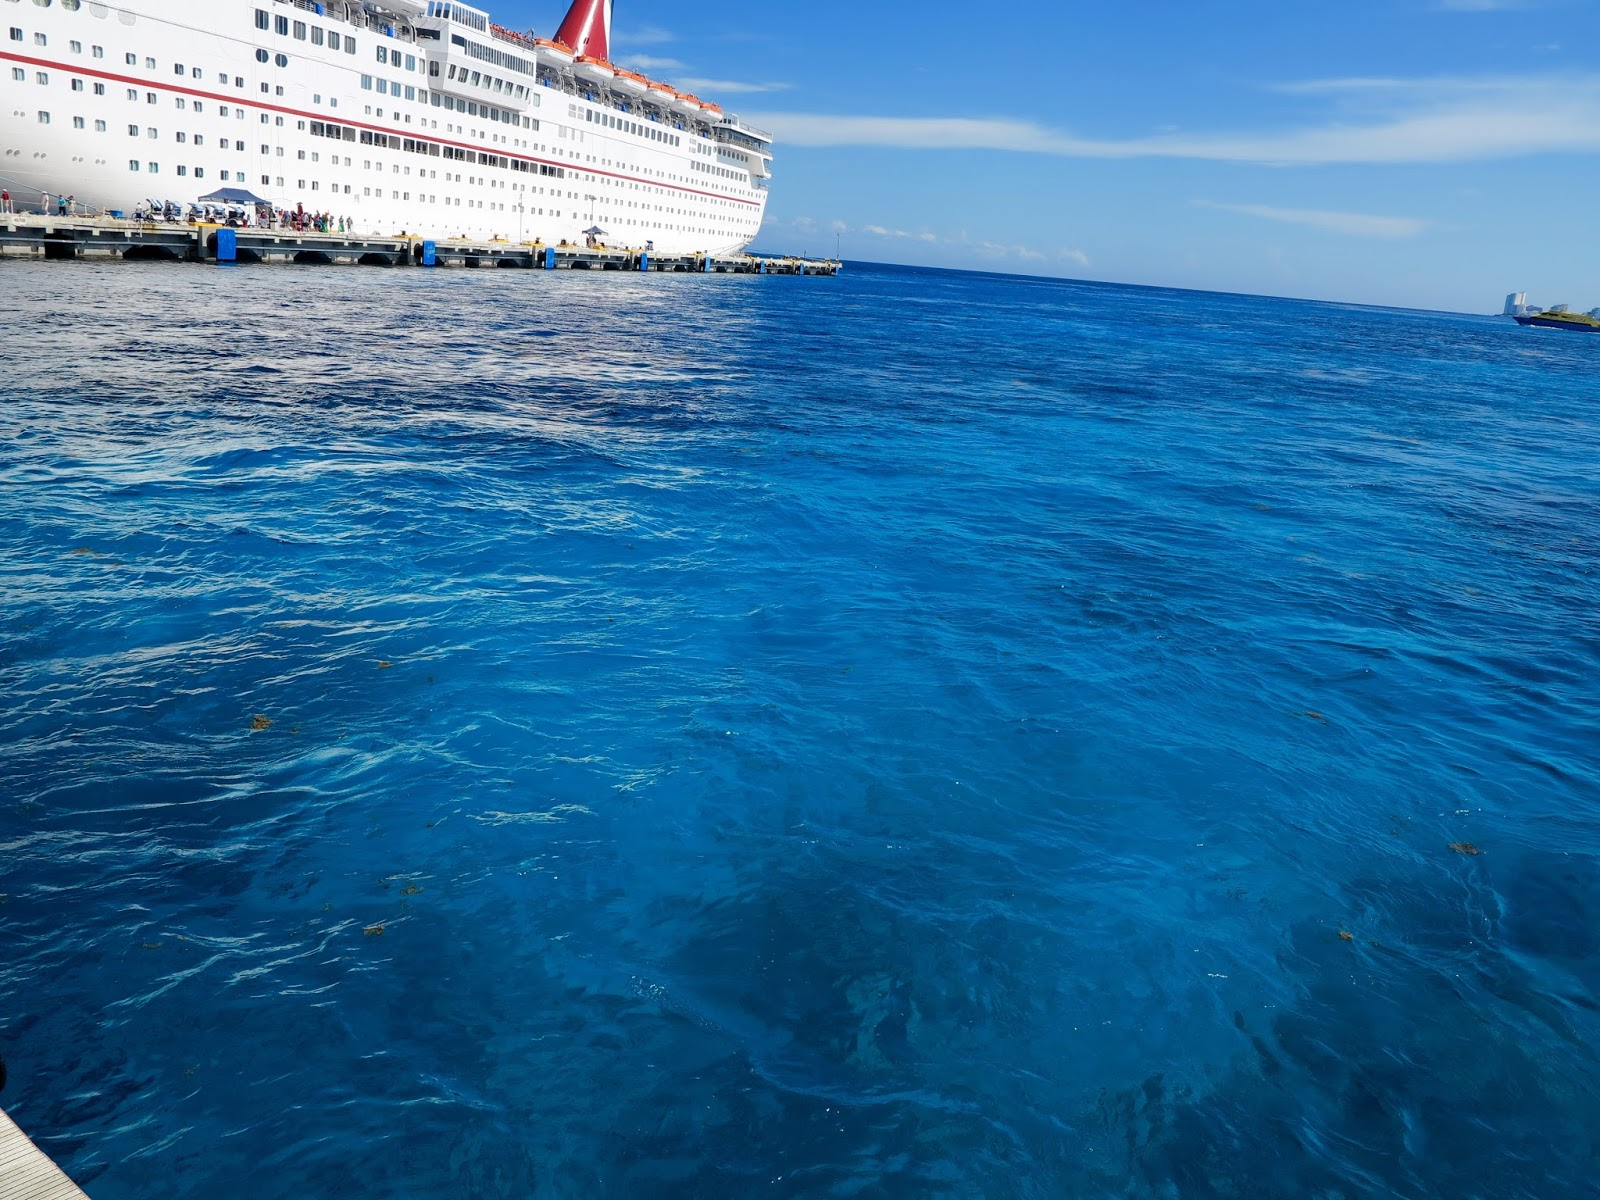 Our Carnival Cruise To Cozumel  Beauty4Free2U